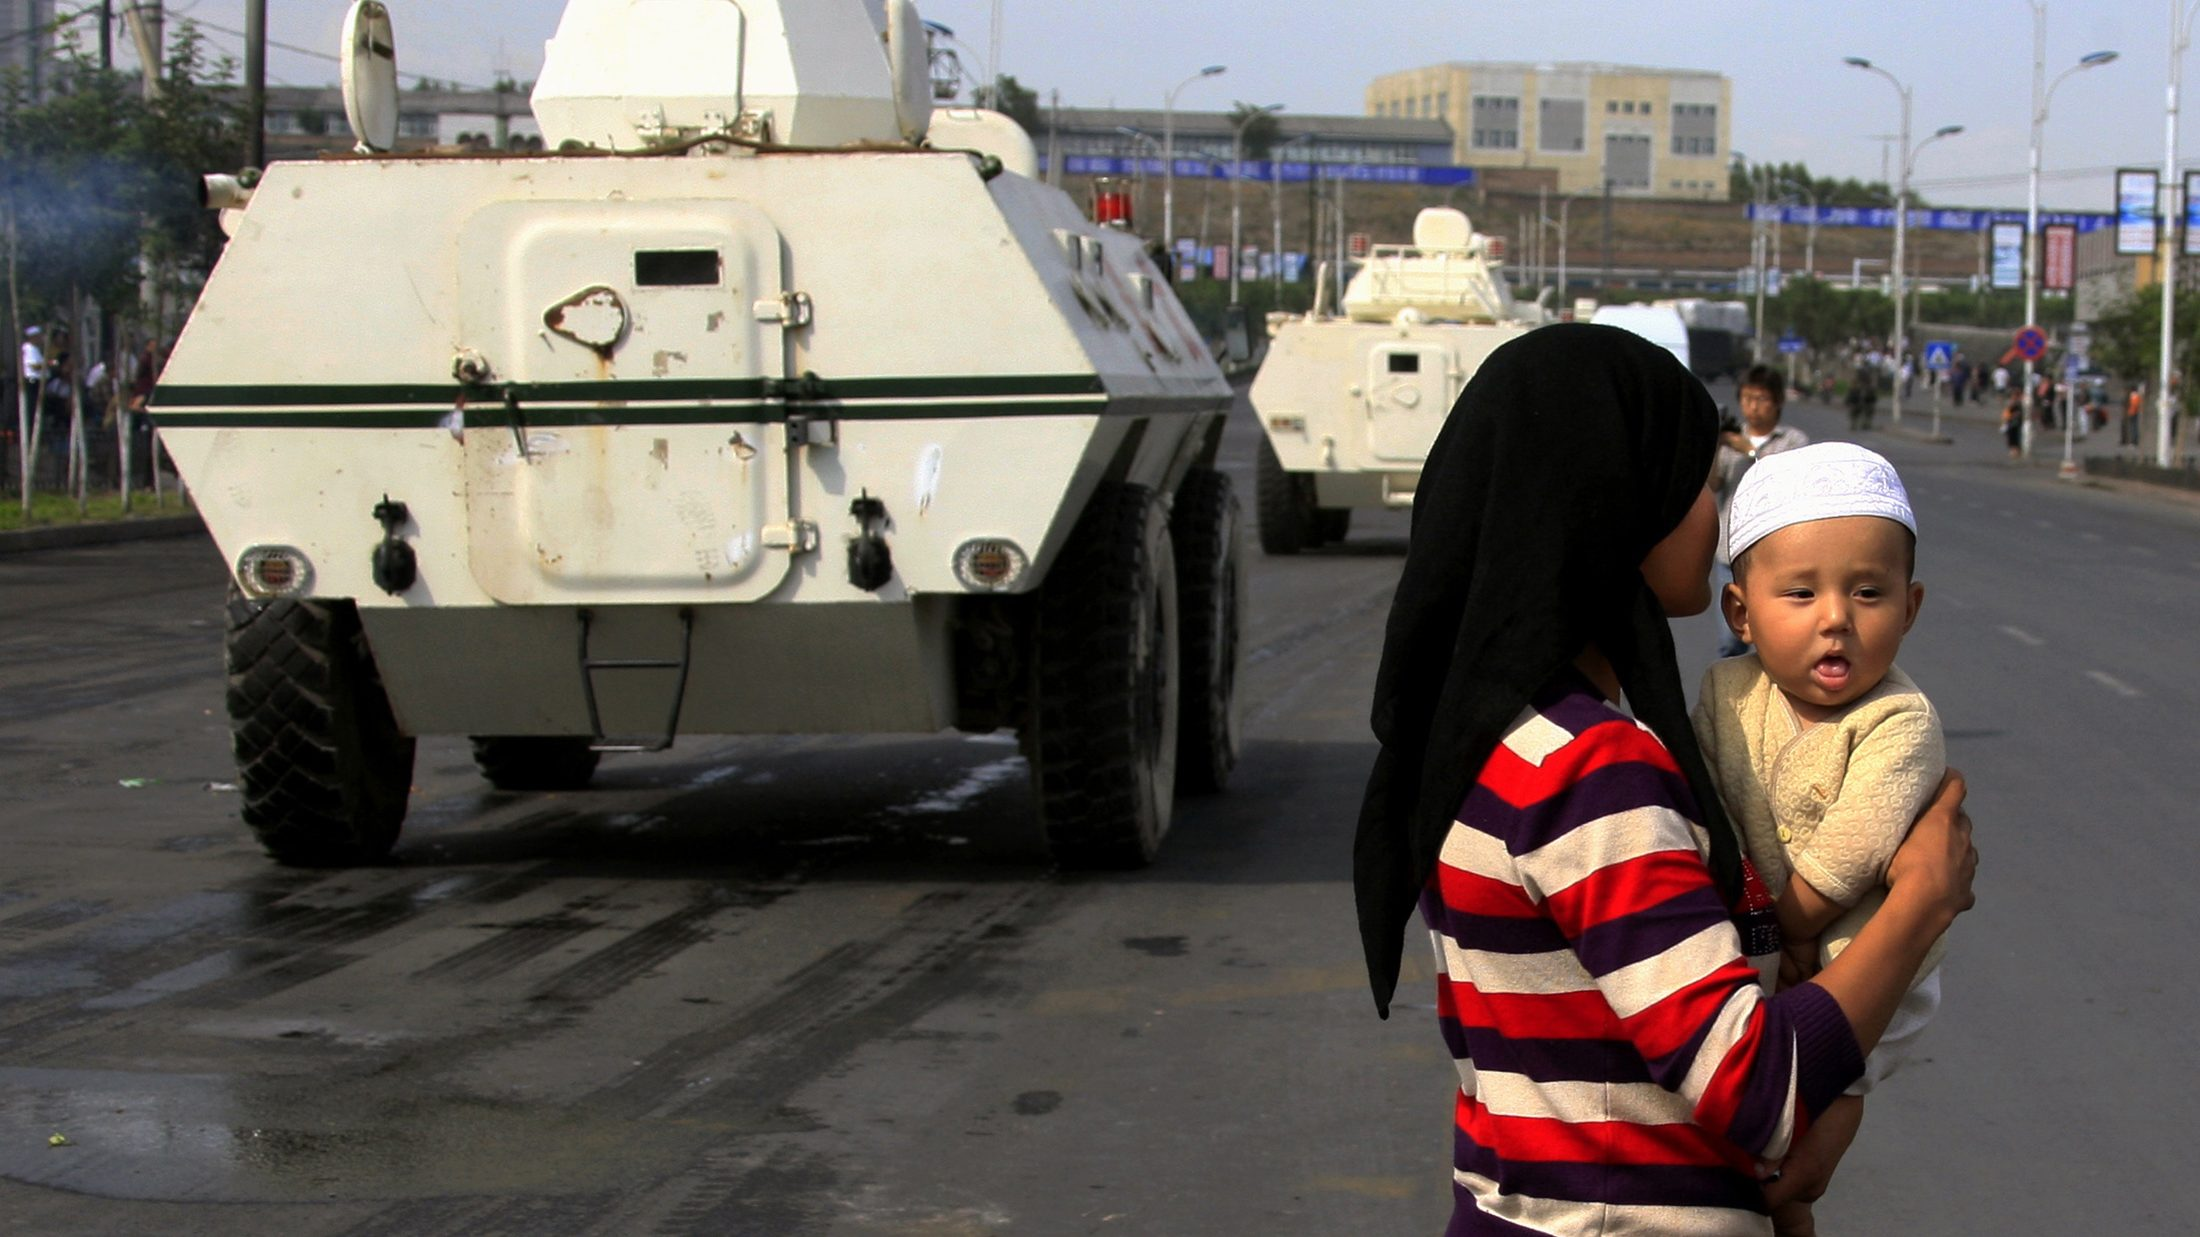 An ethnic Uighur woman carries her child across the road as Chinese armoured personnel carriers drive past in the city of Urumqi in China's Xinjiang Autonomous Region July 12, 2009.